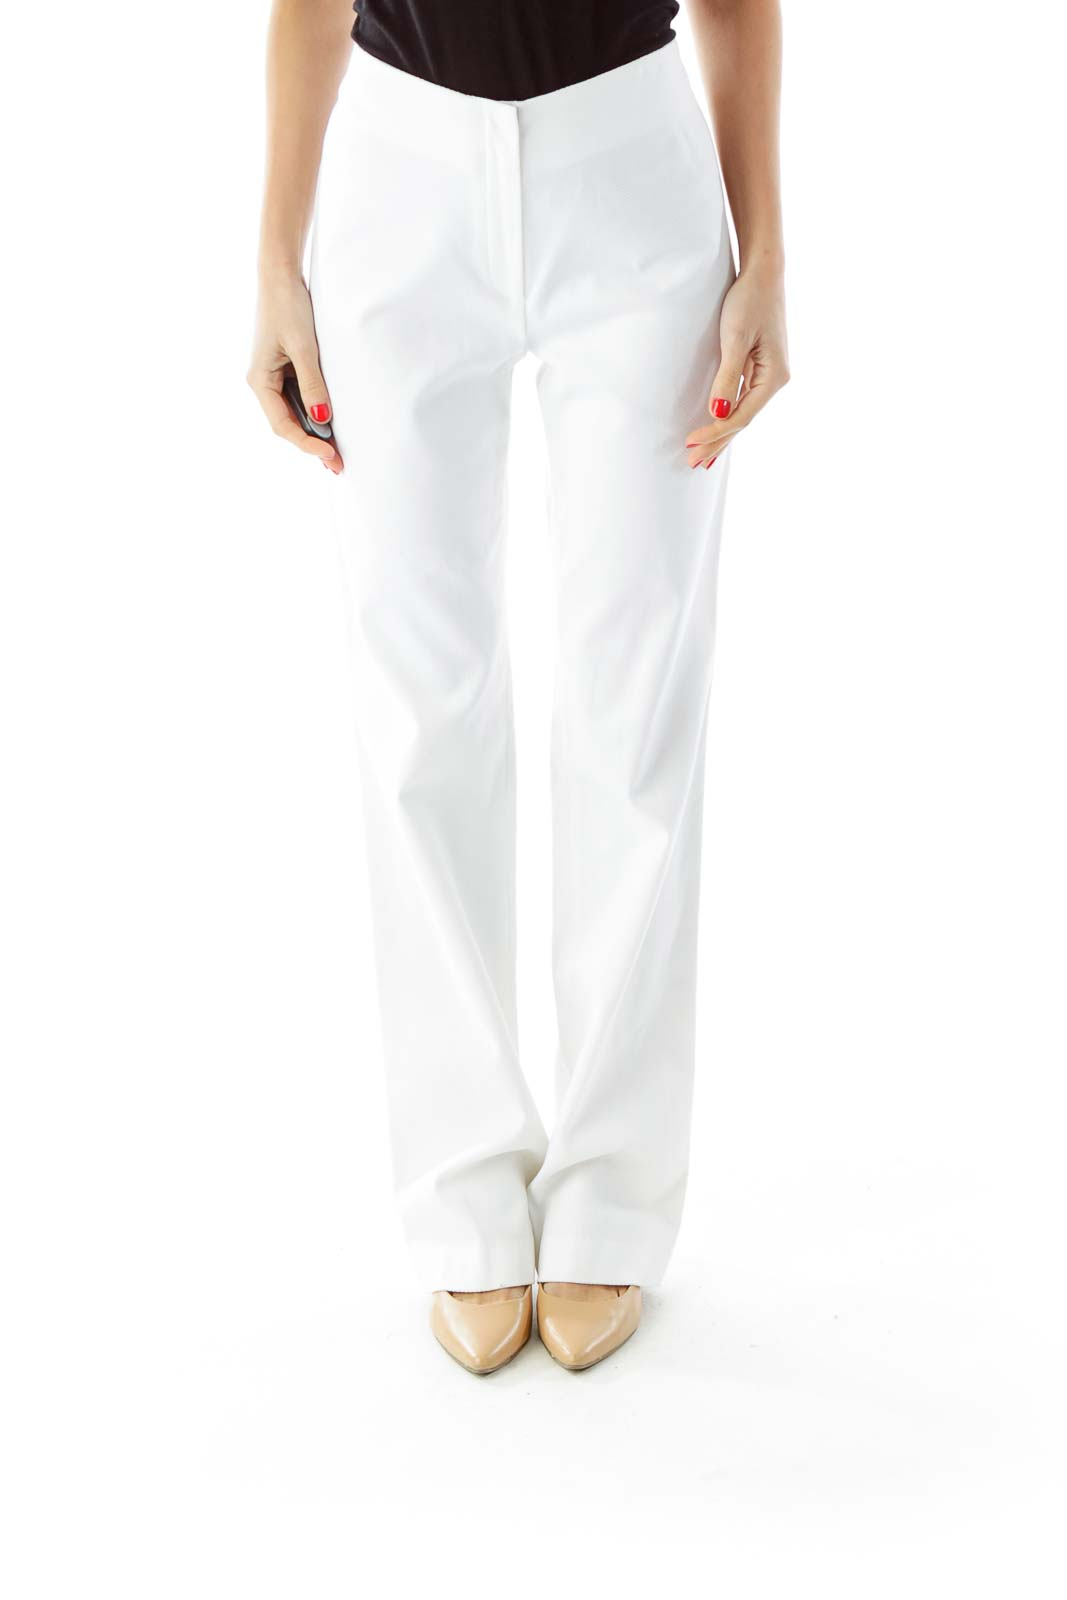 White Textured High-Waisted Pants Front